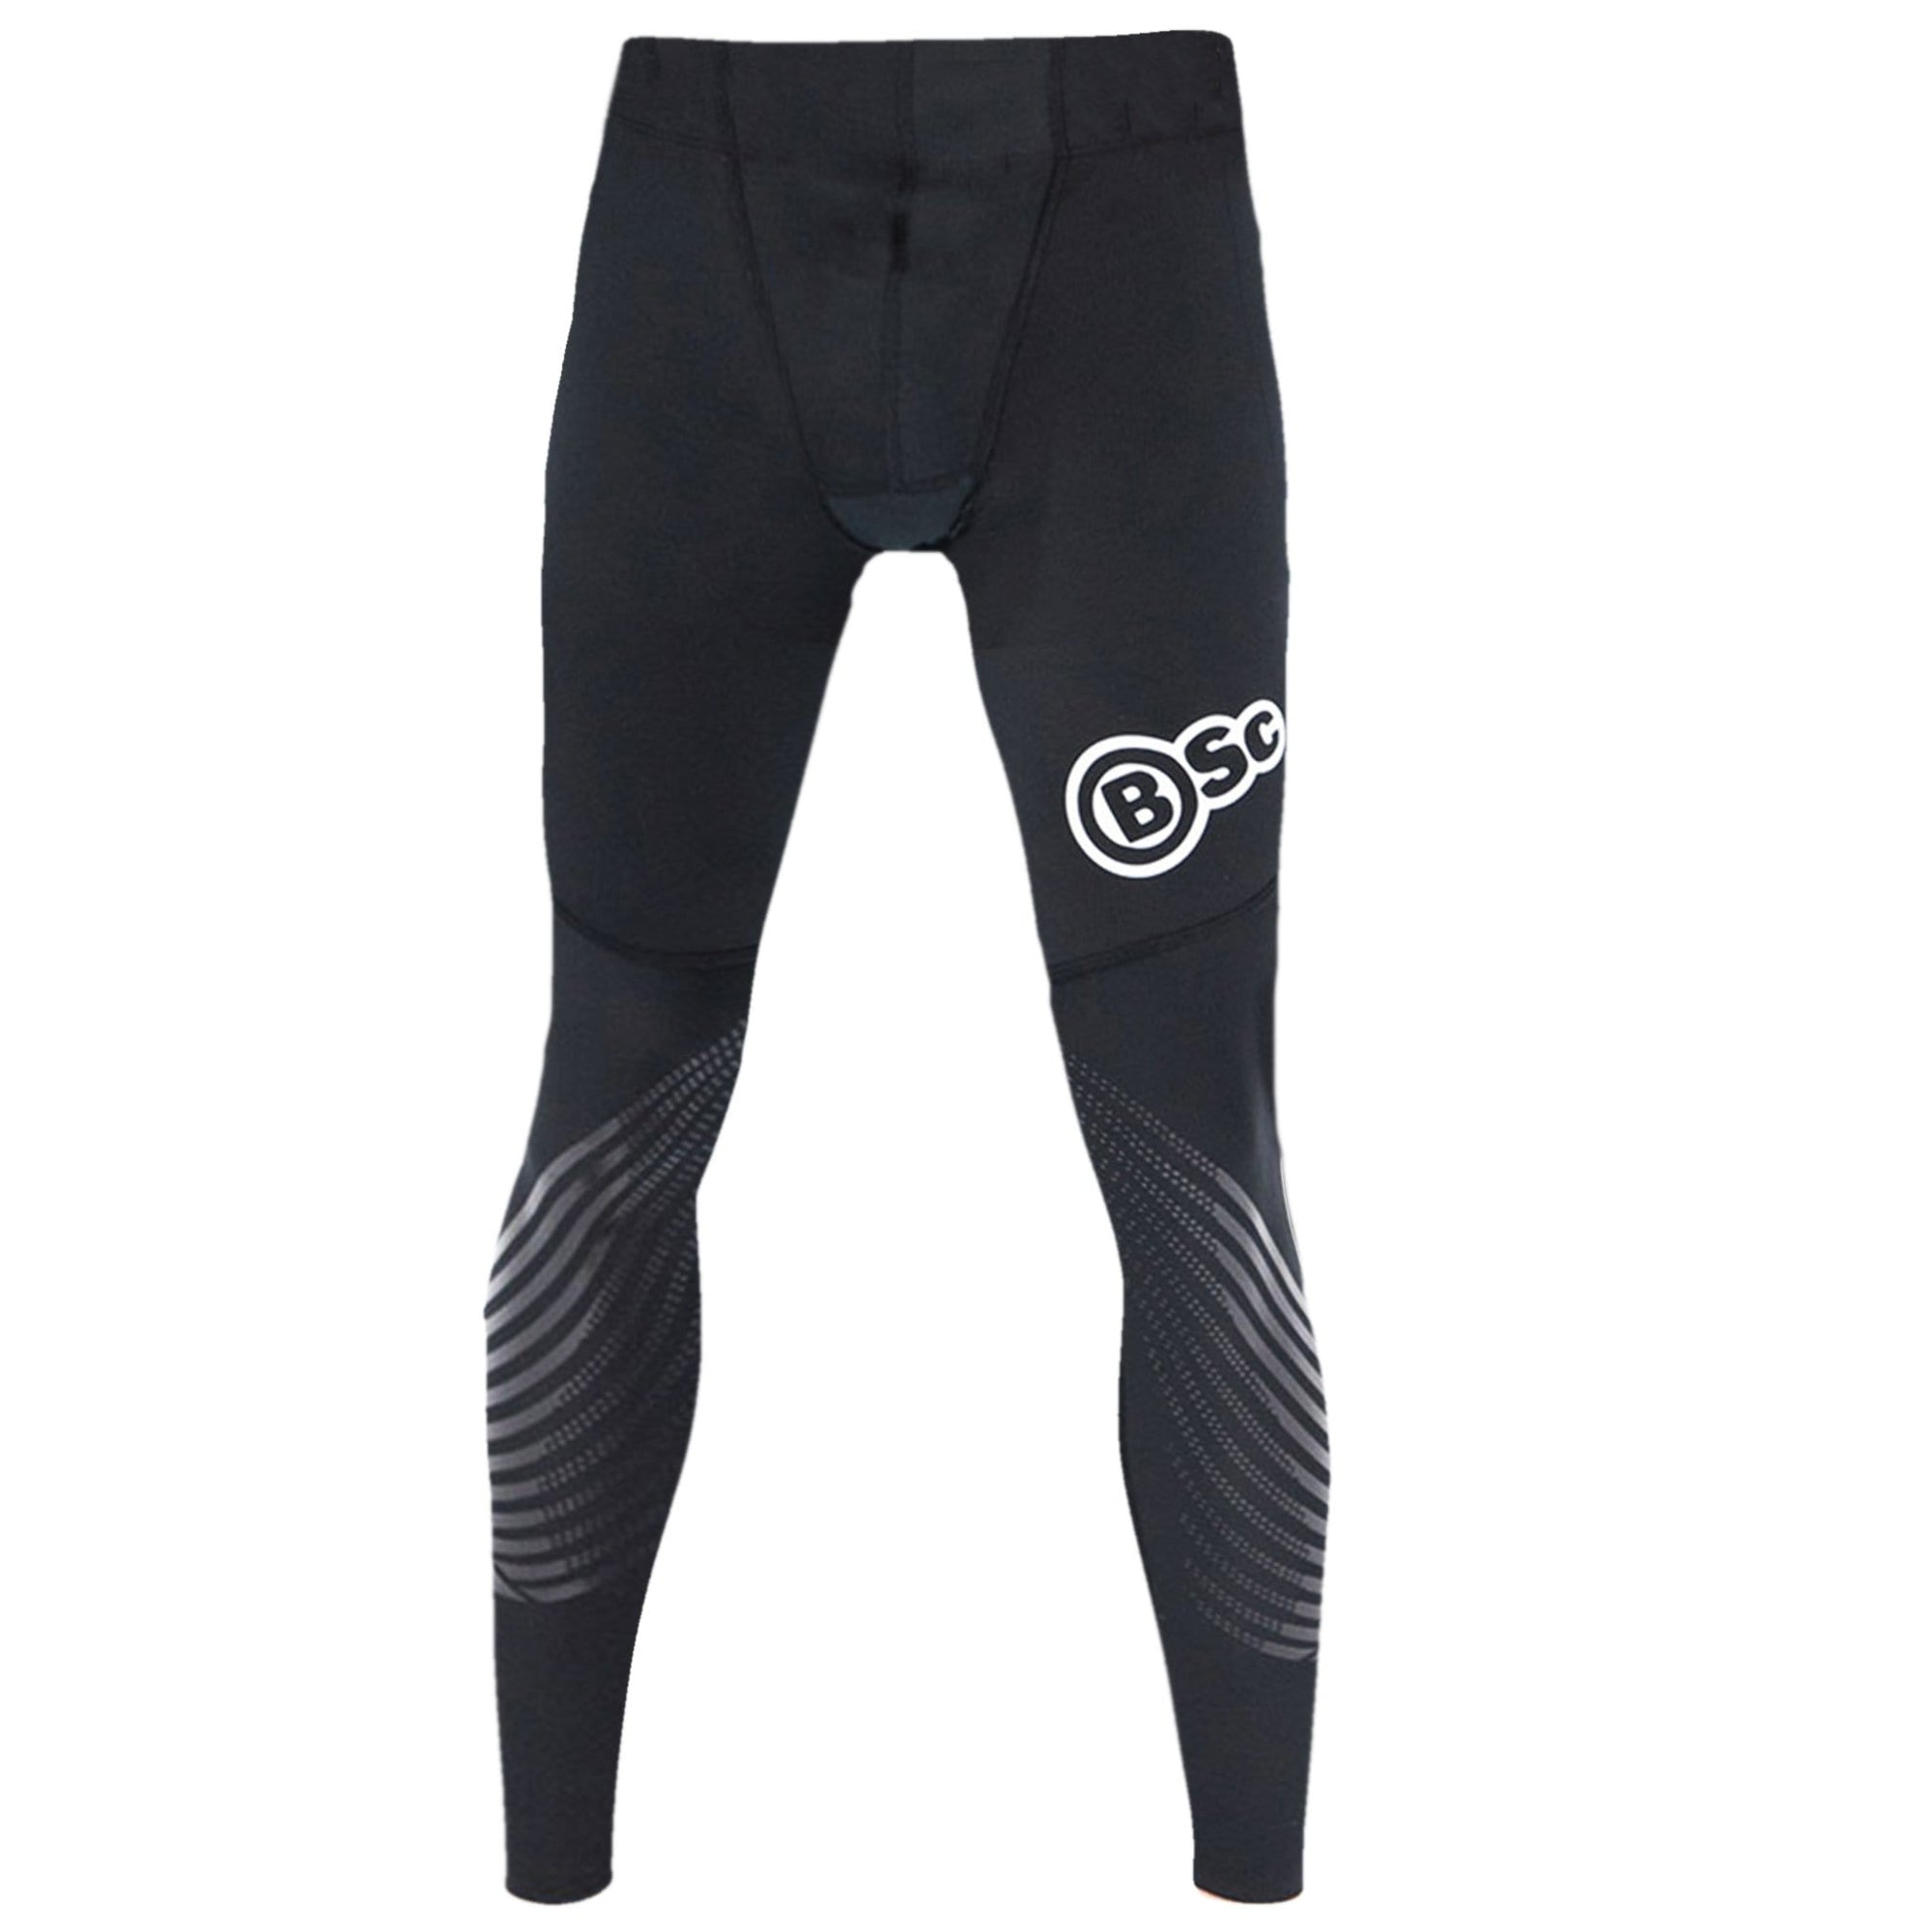 Body Science Men's V9 Compression Longs